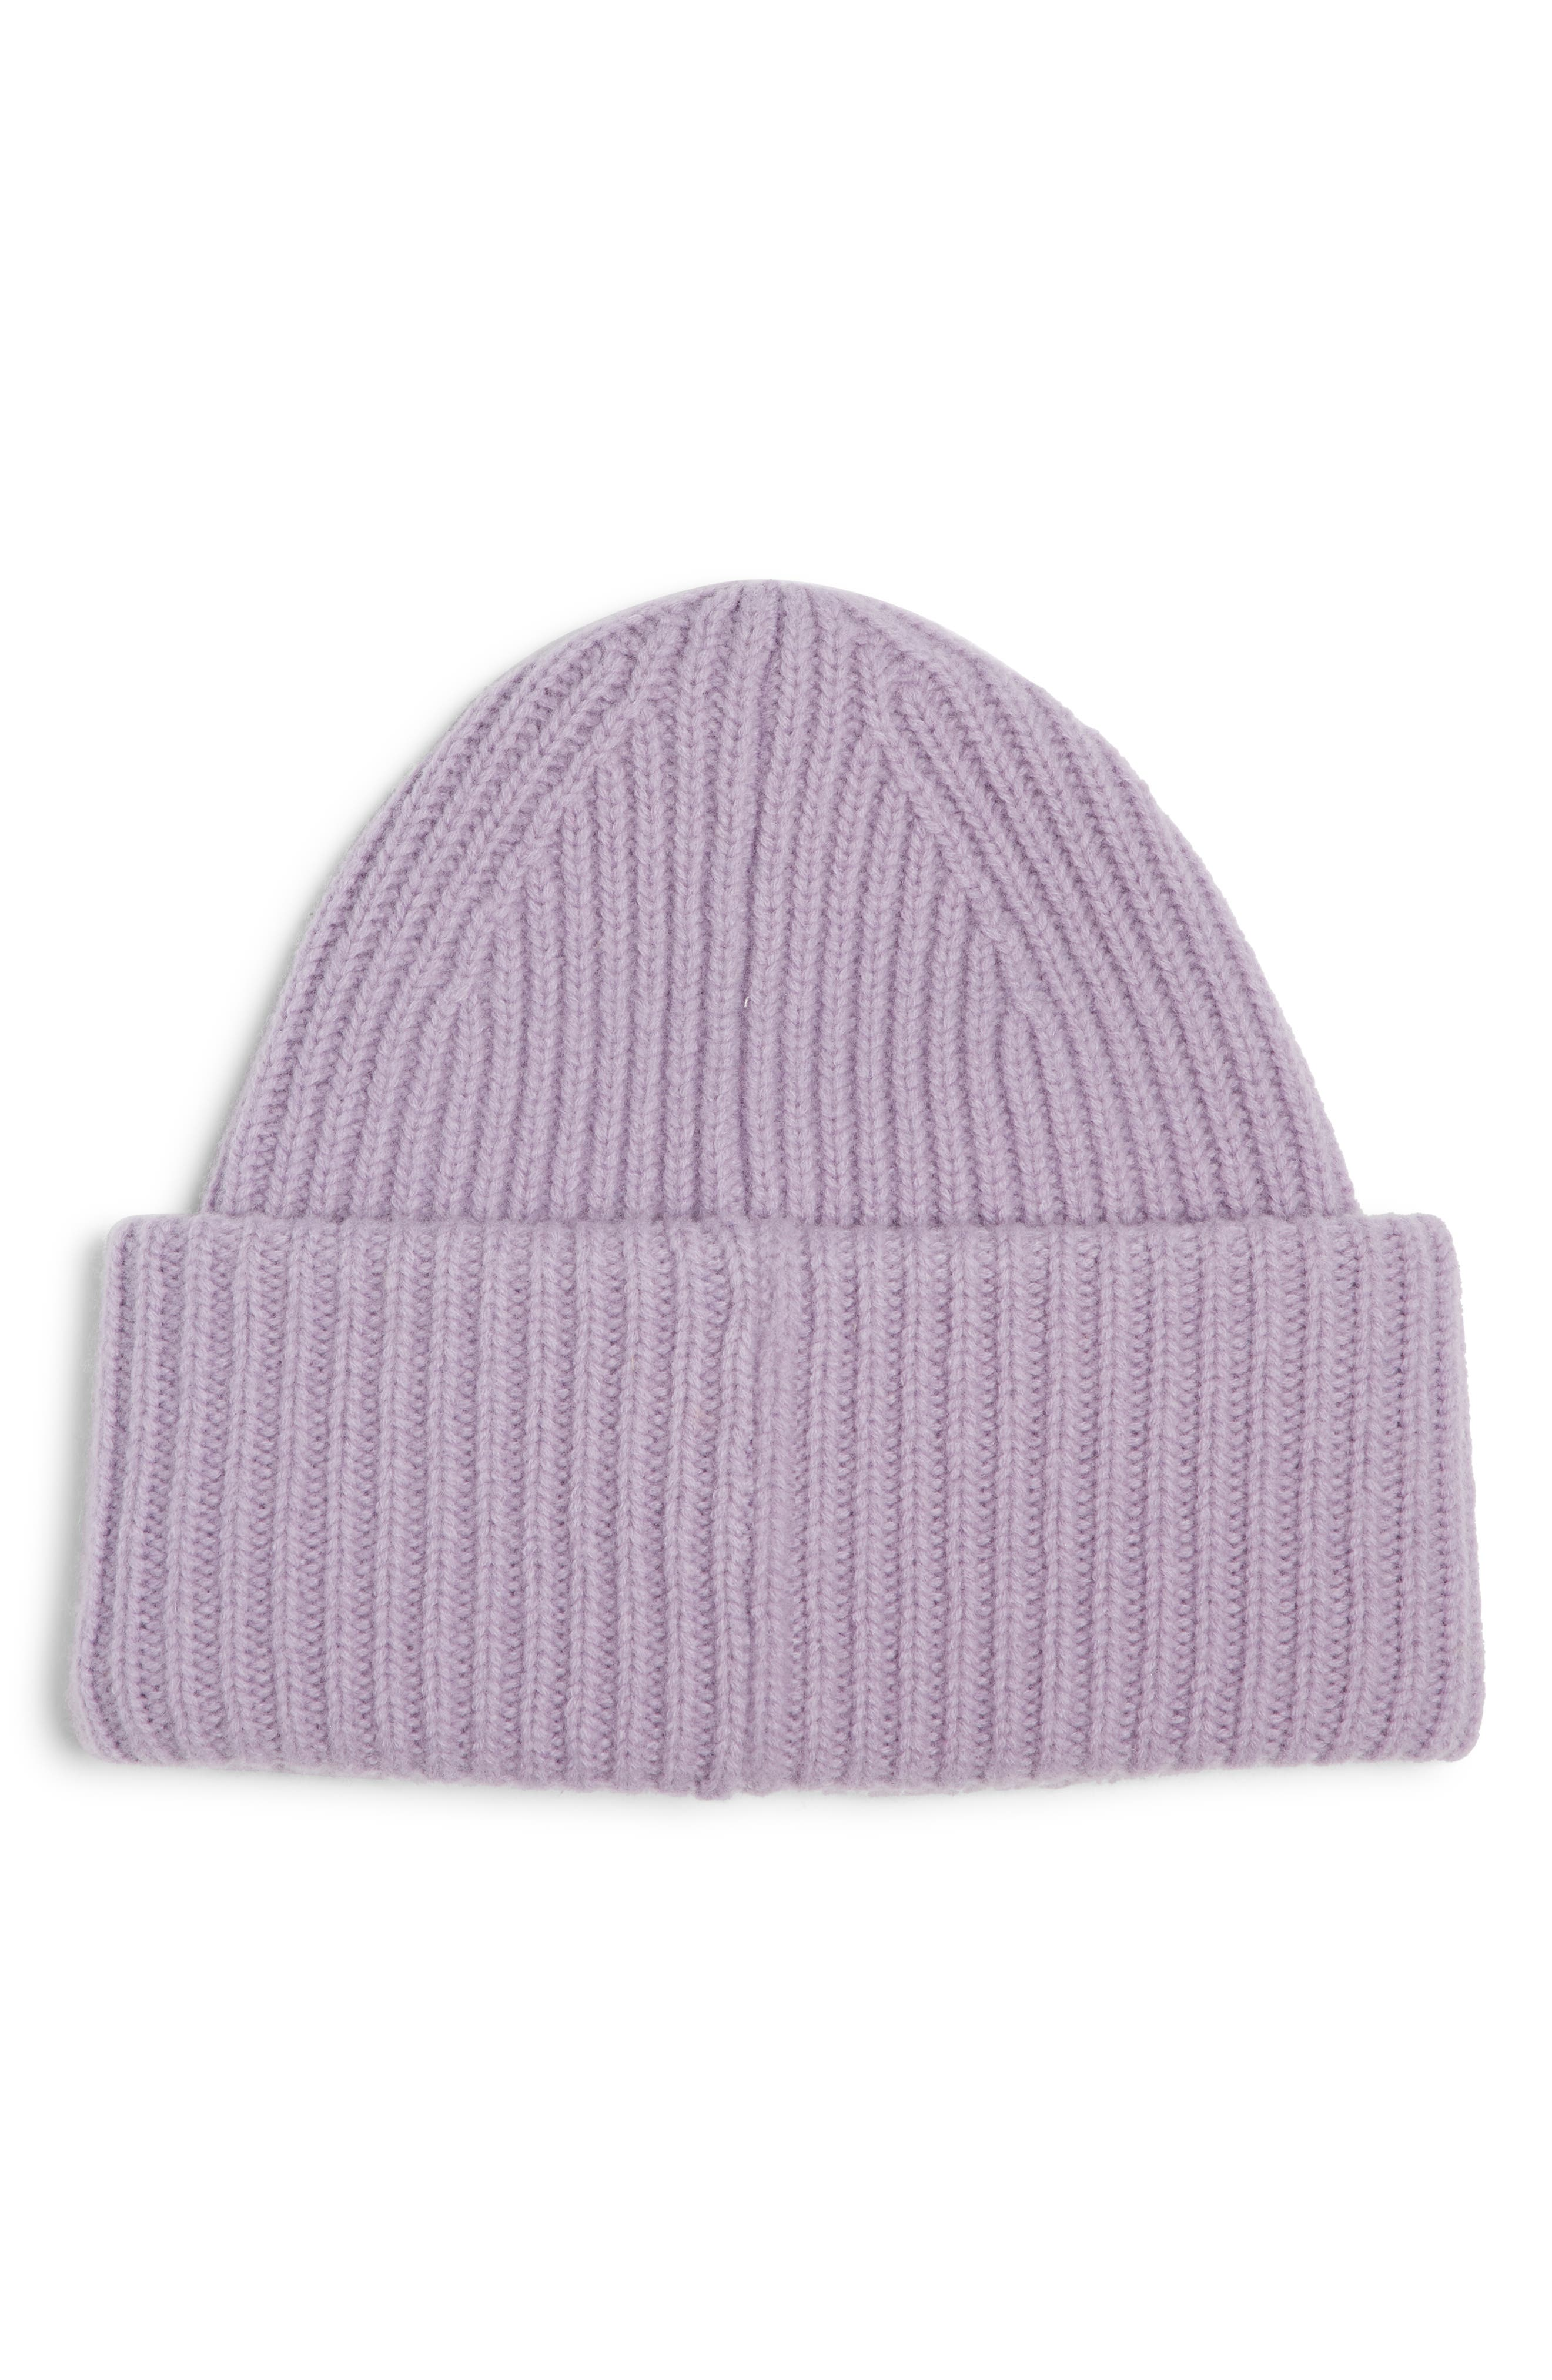 38aa9260ce7 Beanies for Women